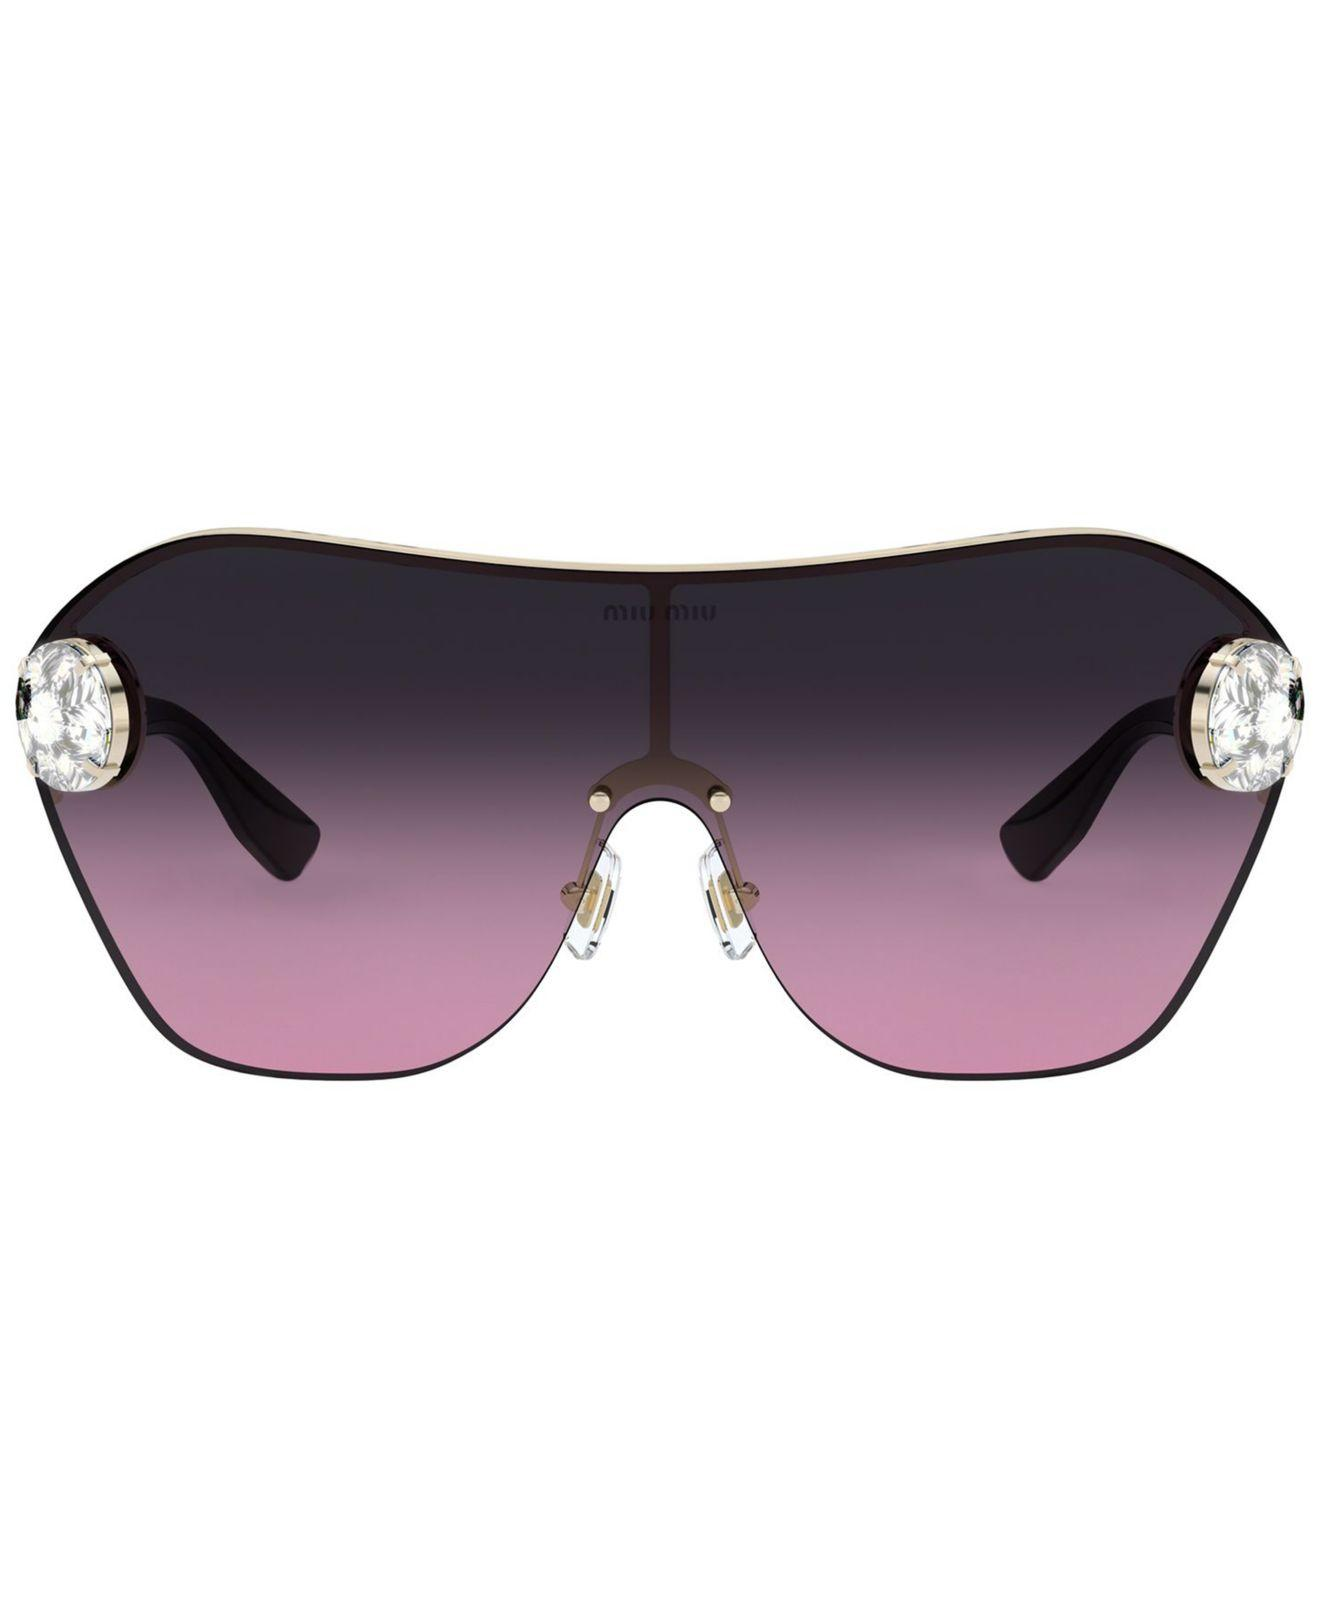 650052178e Miu Miu Sunglasses Polarized